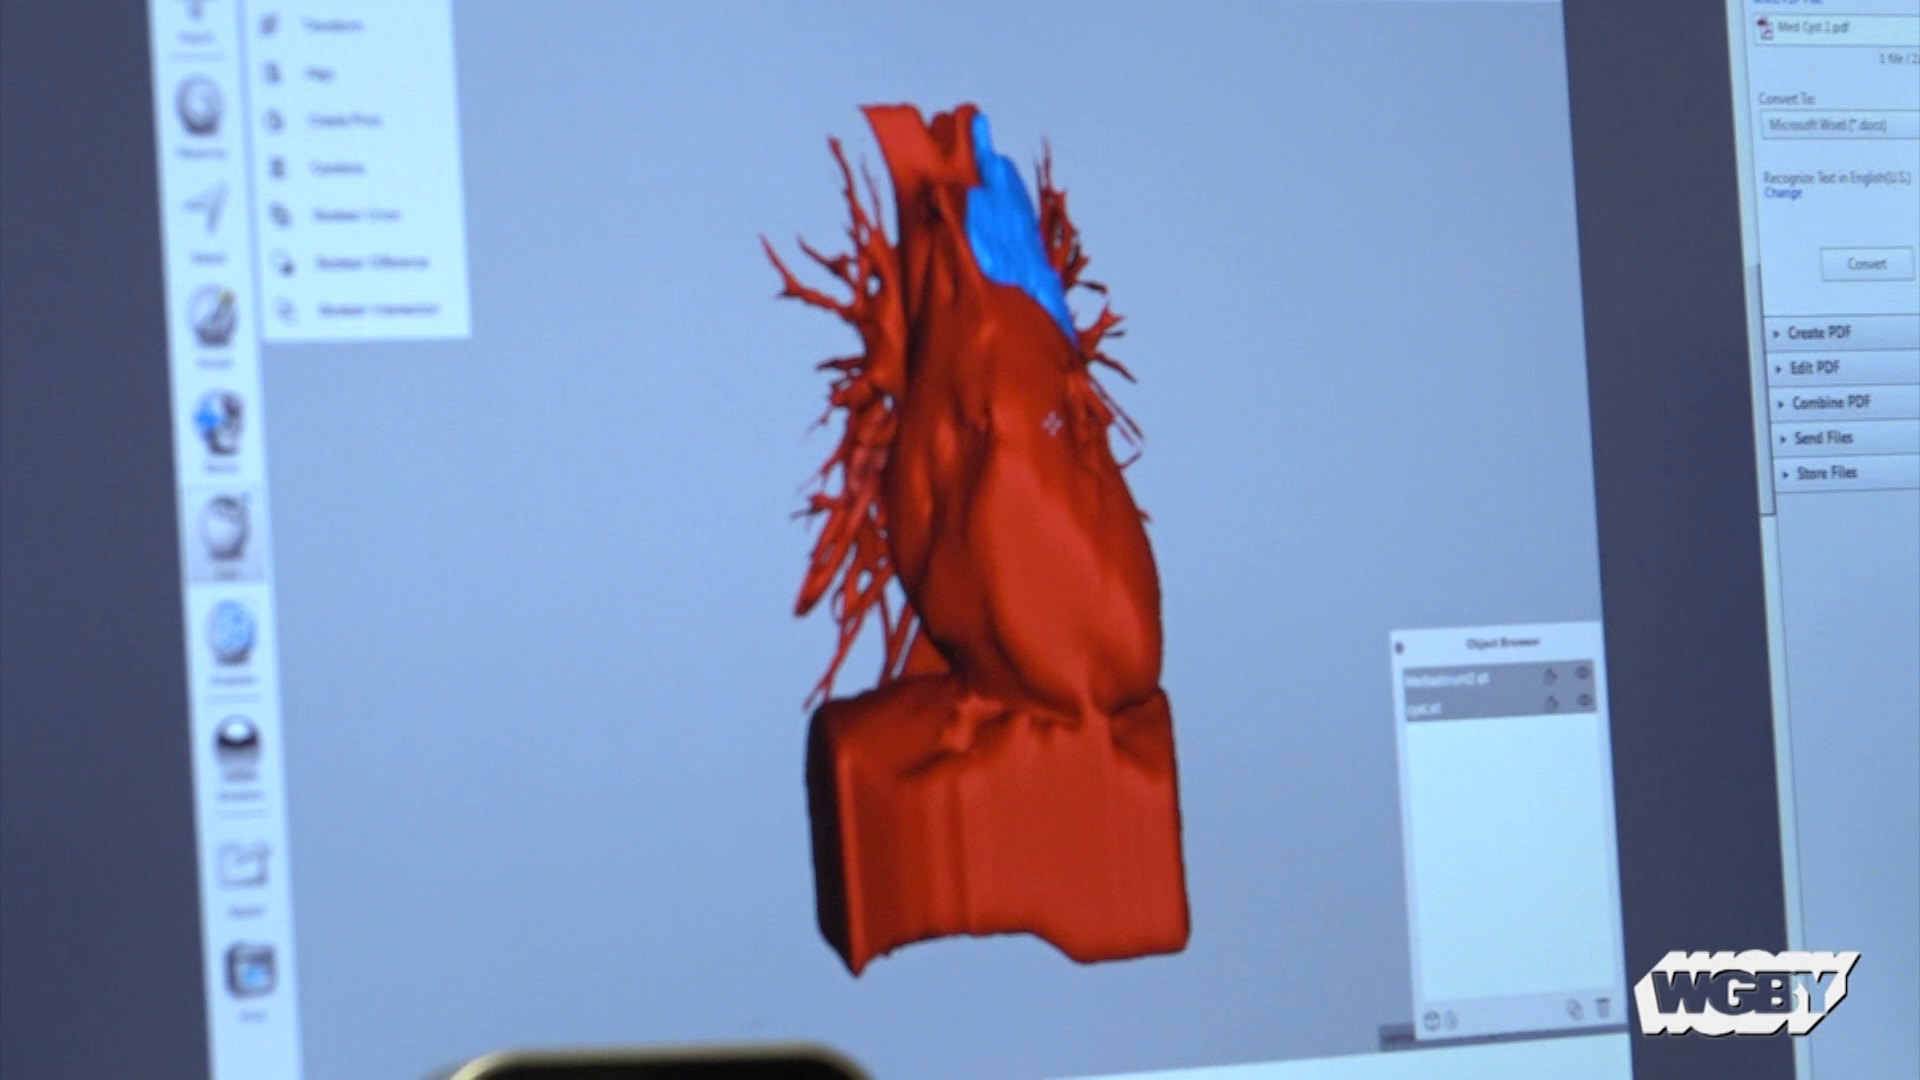 See how Baystate Medical Center is utilizing 3D printing to improve medical care and outcomes for patients in western Massachusetts.